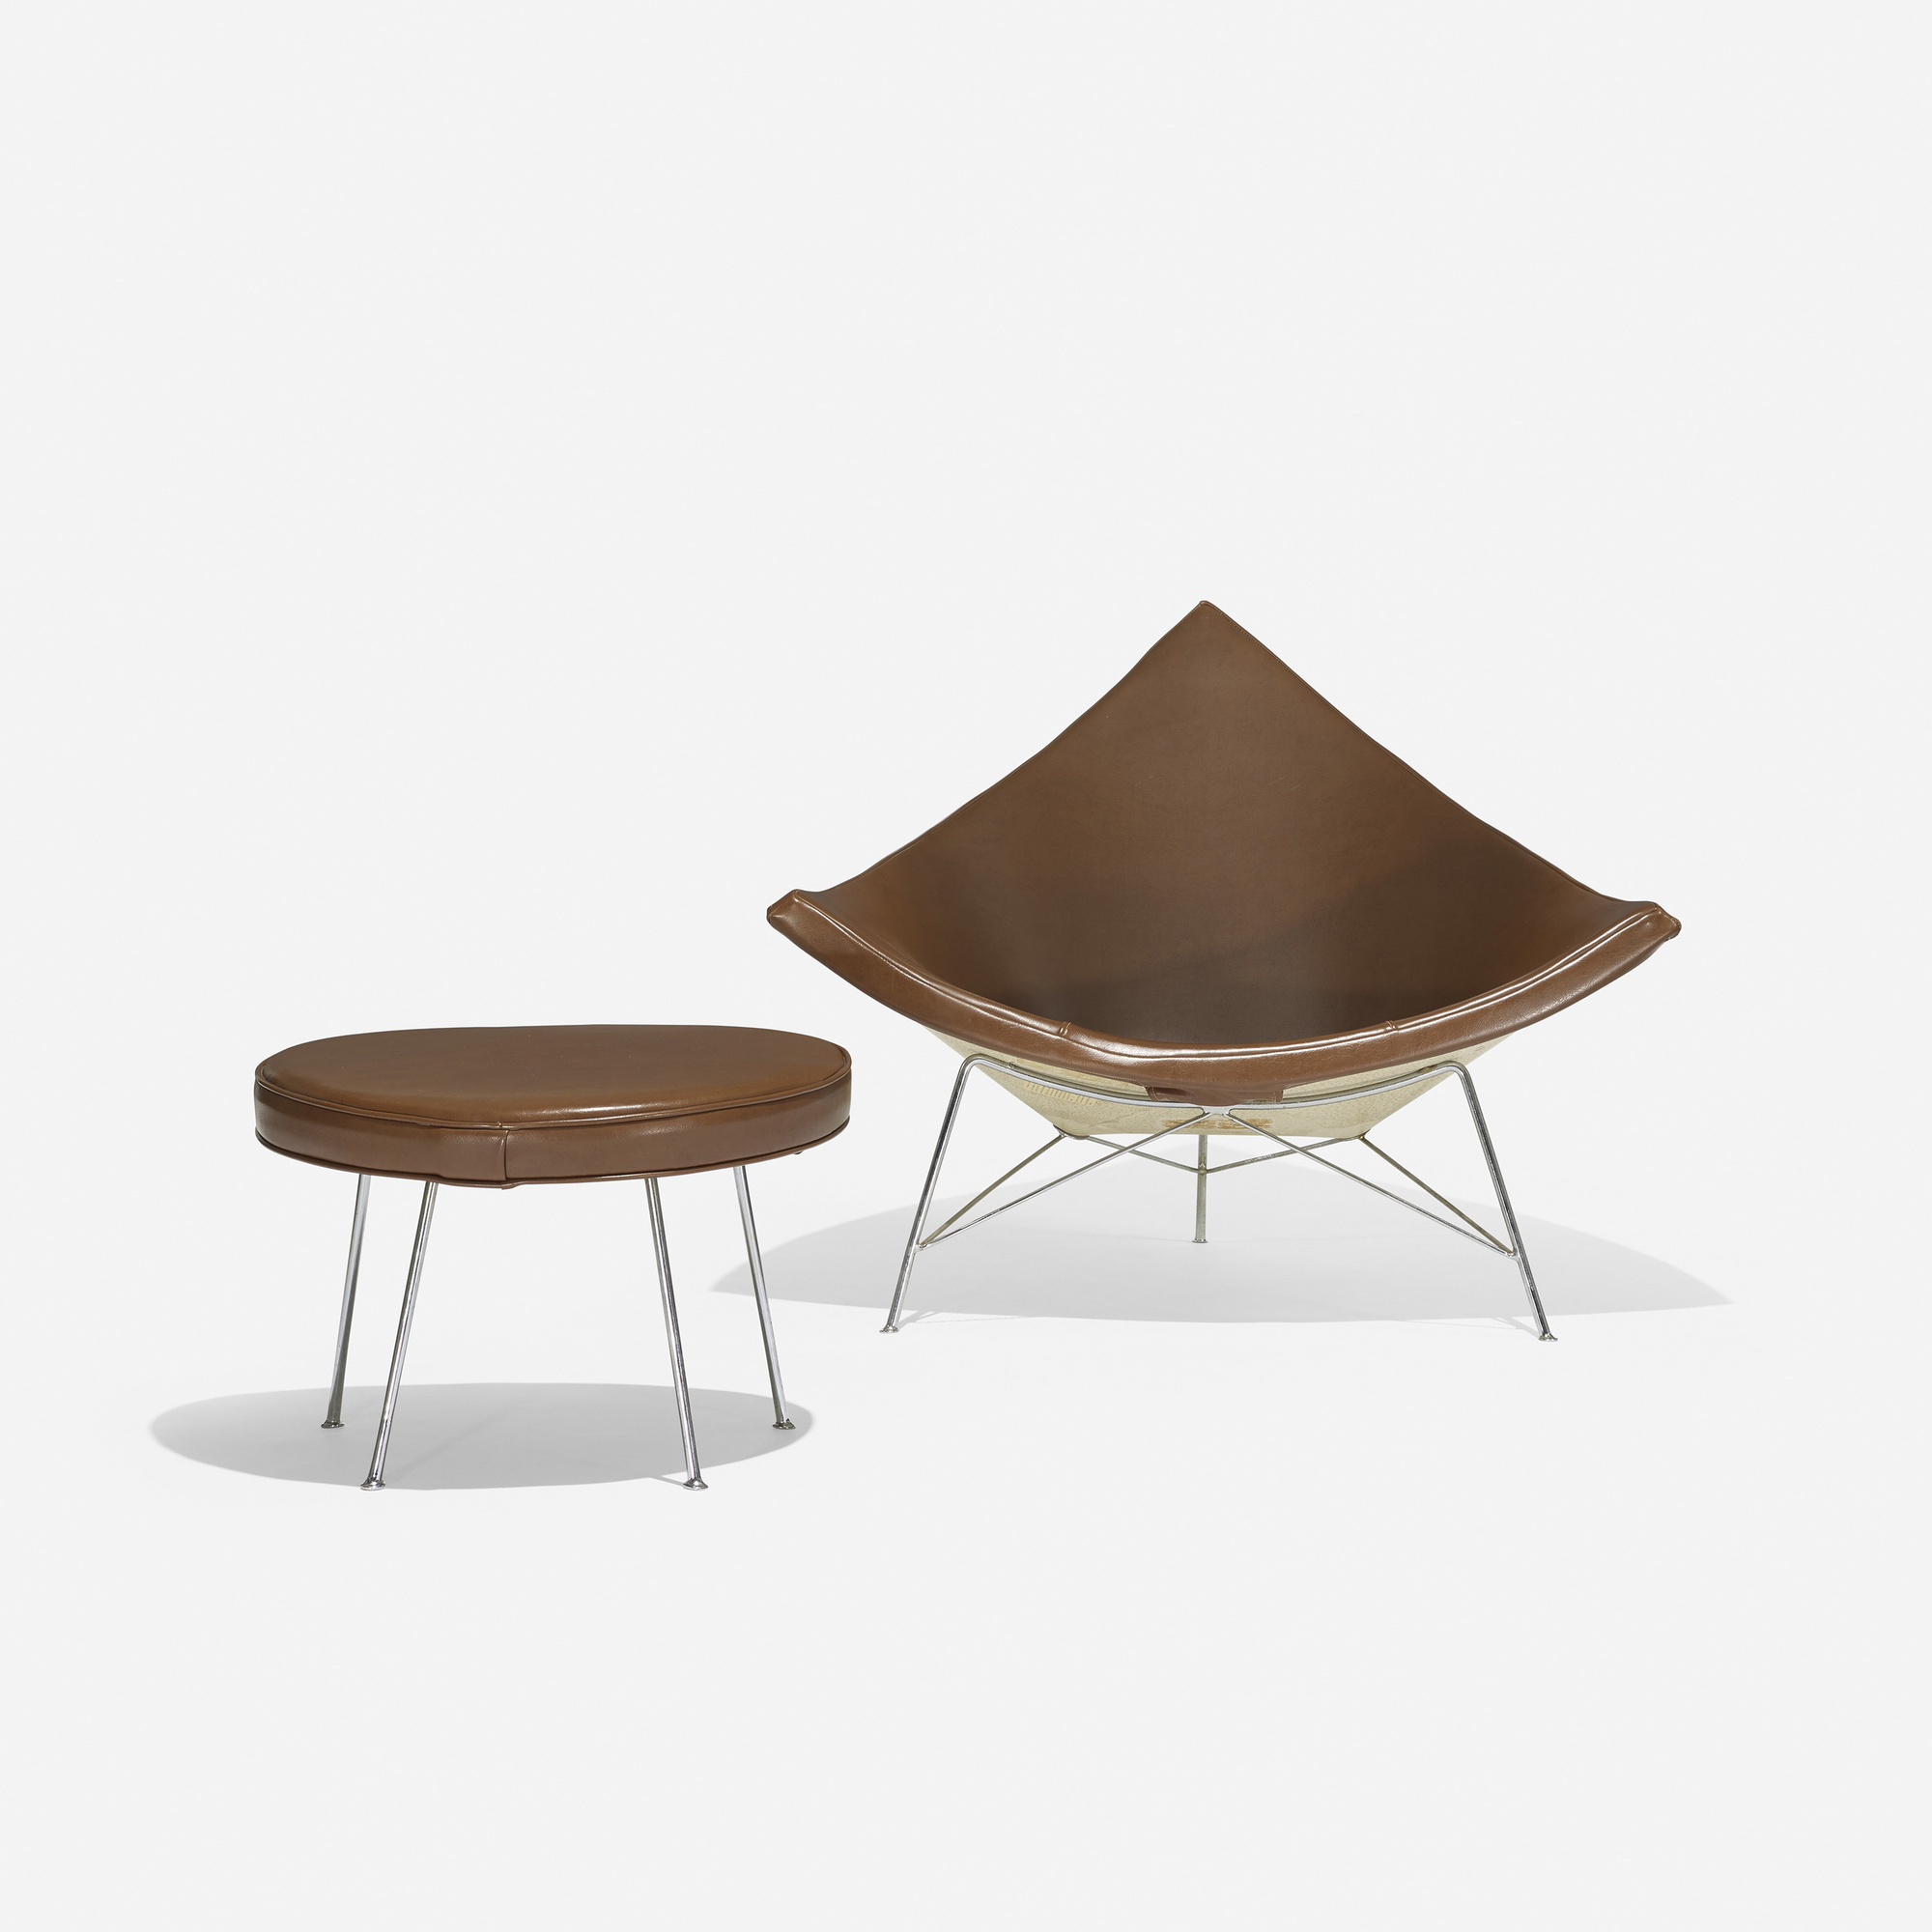 202 George Nelson Ociates Coconut Chair And Ottoman 1 Of